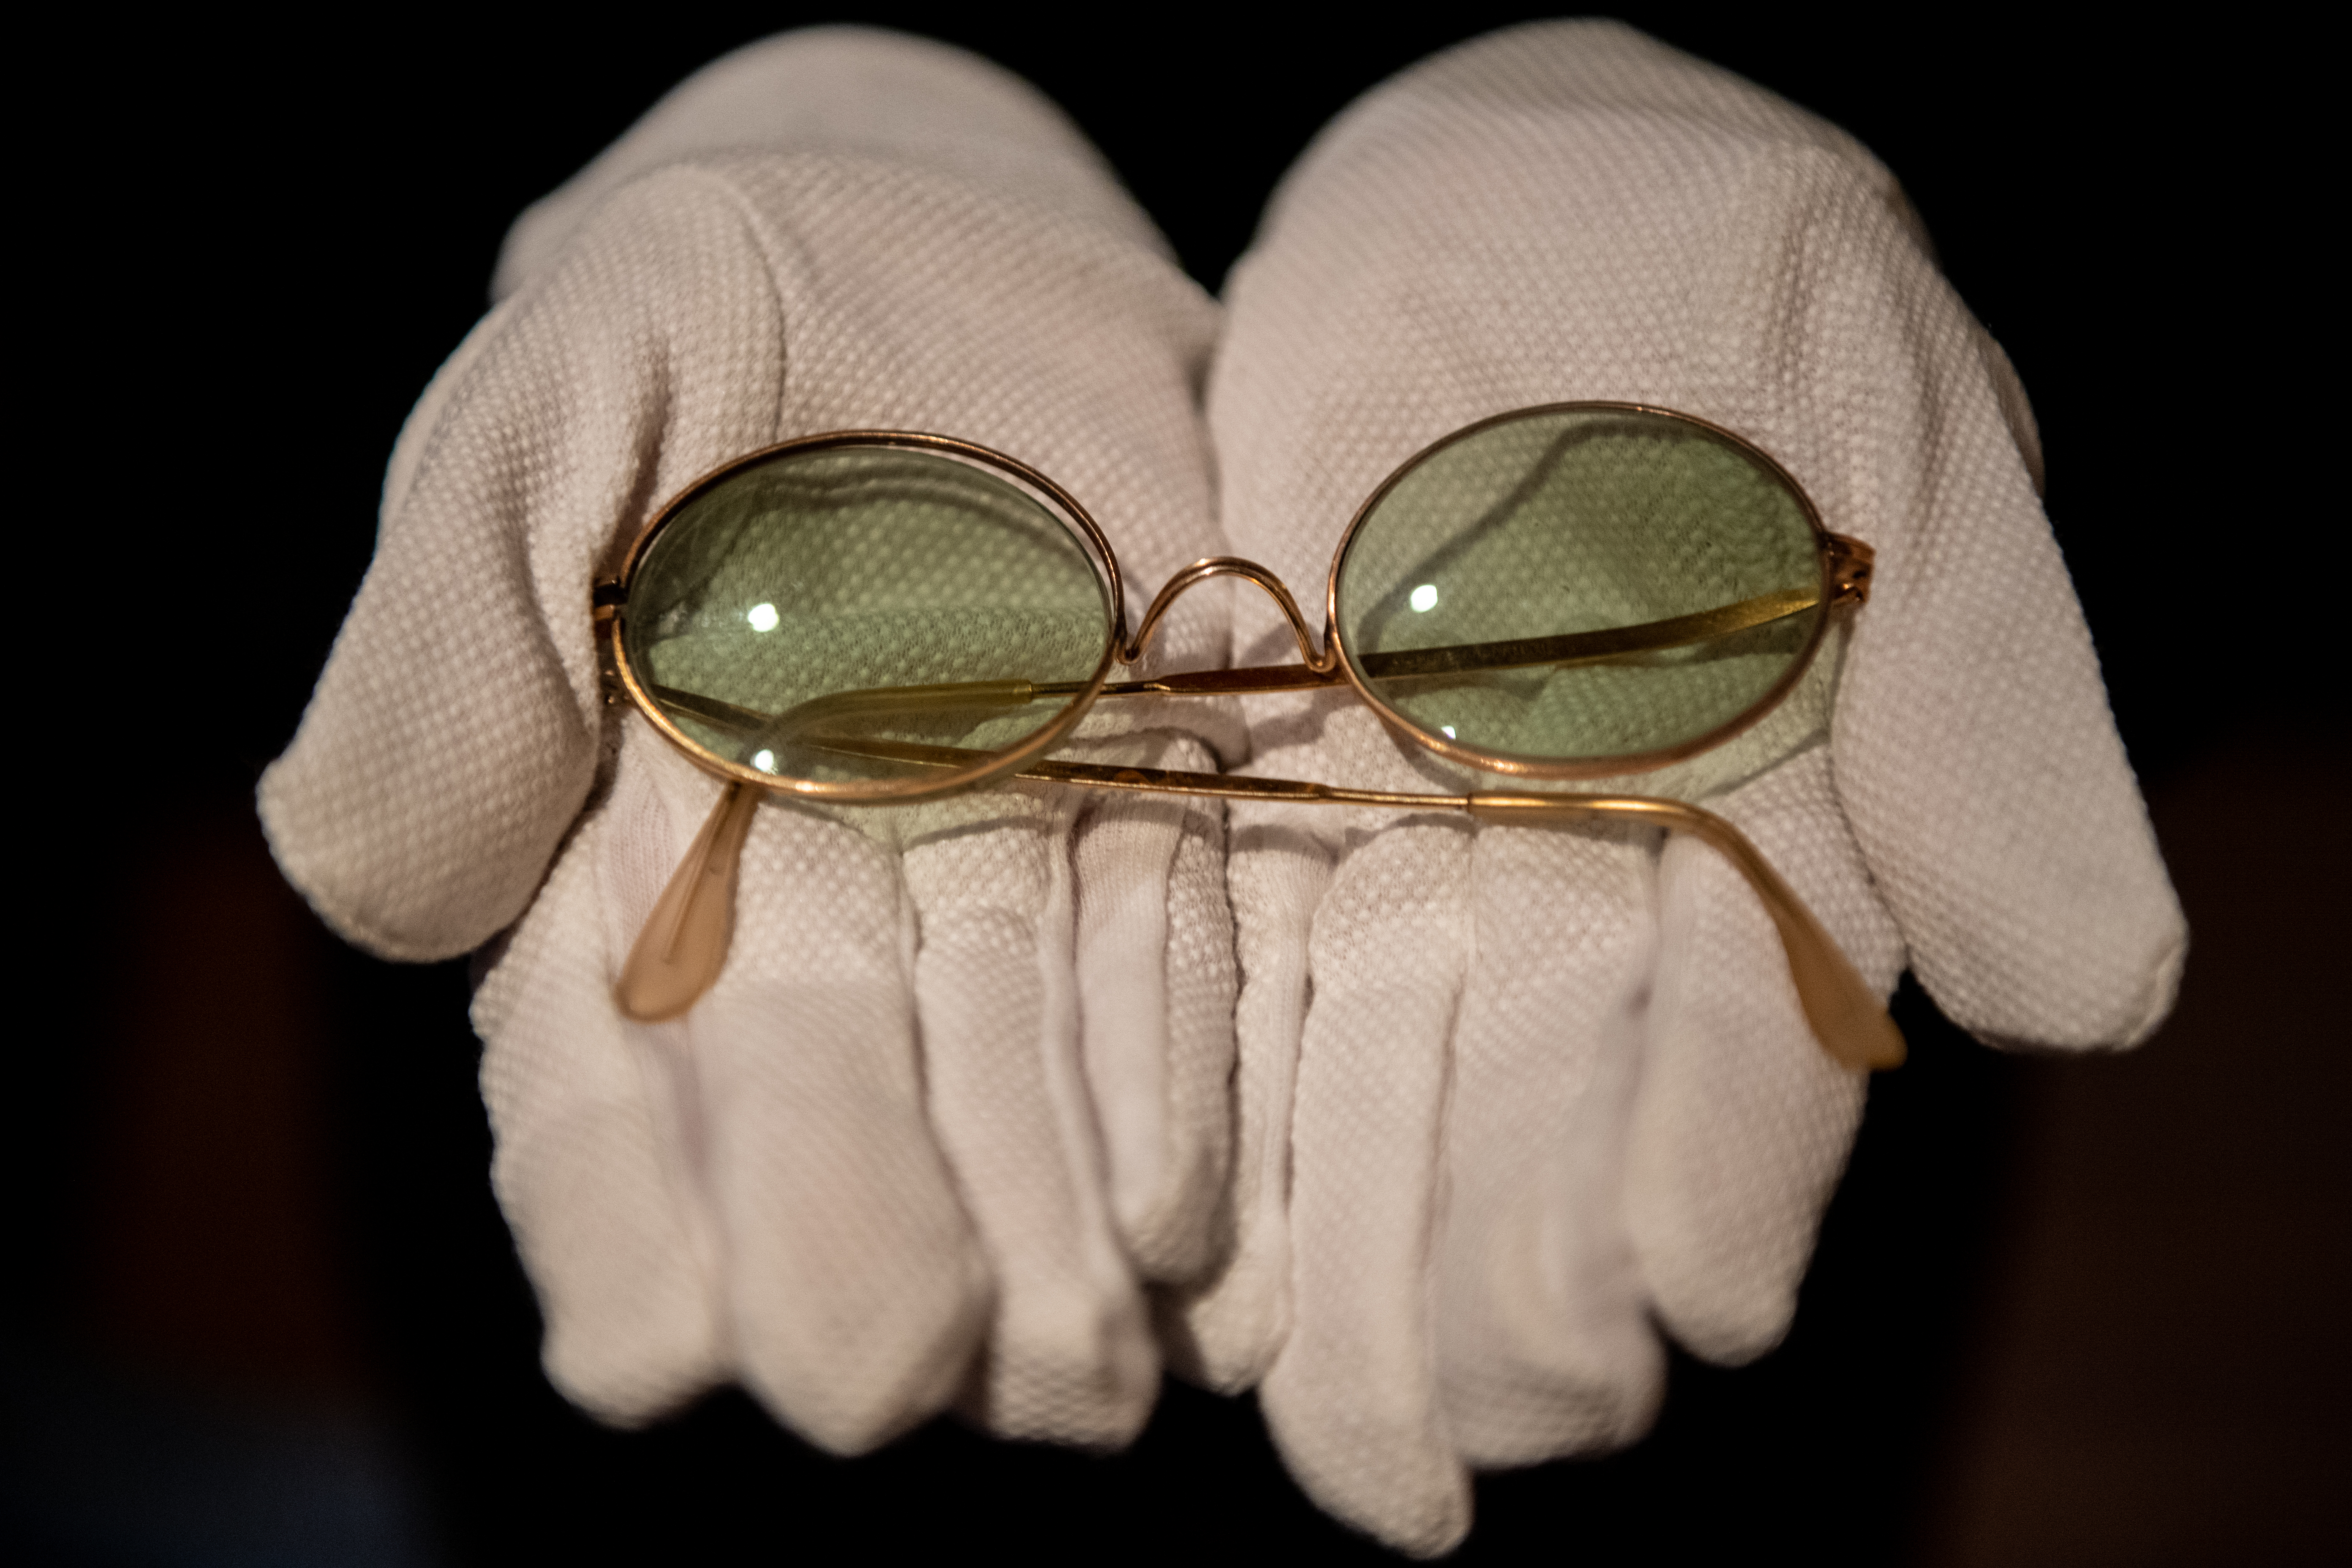 John Lennon's round sunglasses are up for auction